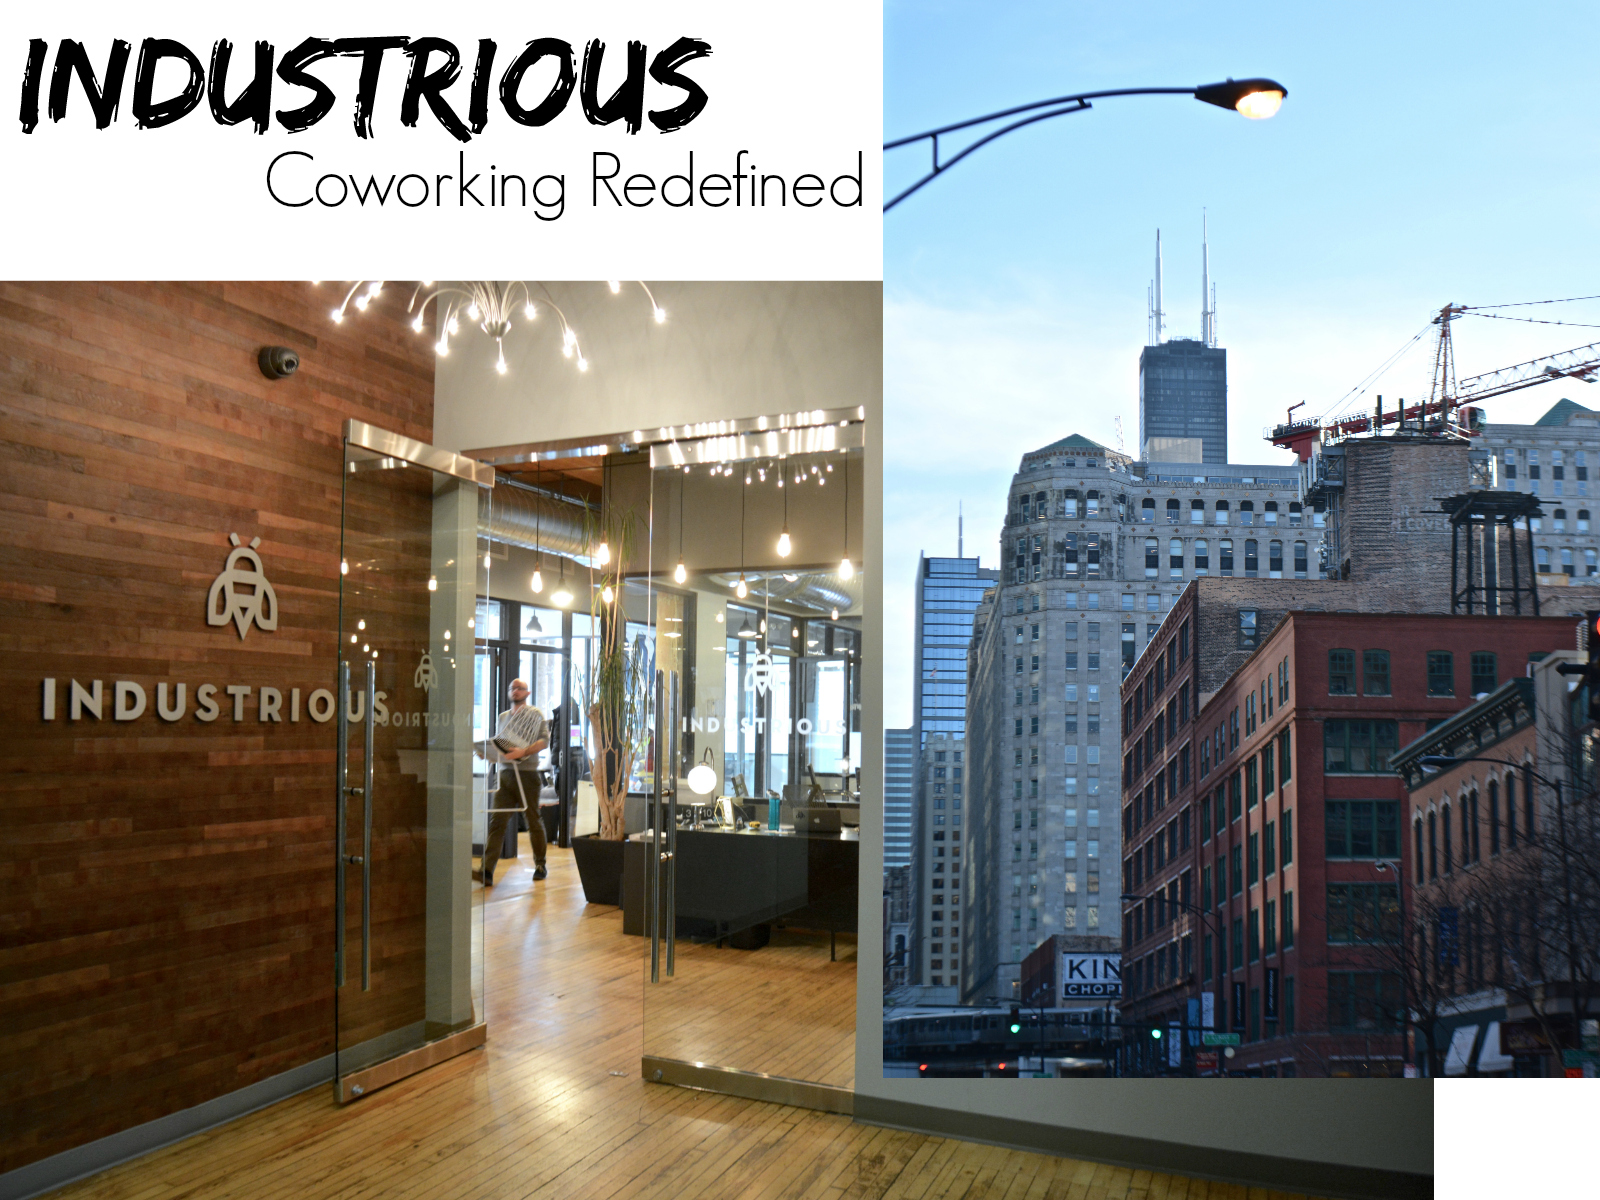 Industrious, Industrious Chicago, Abacus coffee, Bennison's pastries, coworking space in Chicago, Industrious coworking, espacio coworking en Chicago, coworking, Jamie Hodari and Justin Stewart, Jamie Hodari, Justin Stewart, Industrious River North, inspiring blogger space, blogger work space, Pinterest offices, oficinas de Pinterest, Fashionlingual, Chicago blogger, Chicago fashion blogger, Latina blogger, Chicago Latina blogger, bloguera de Chicago,